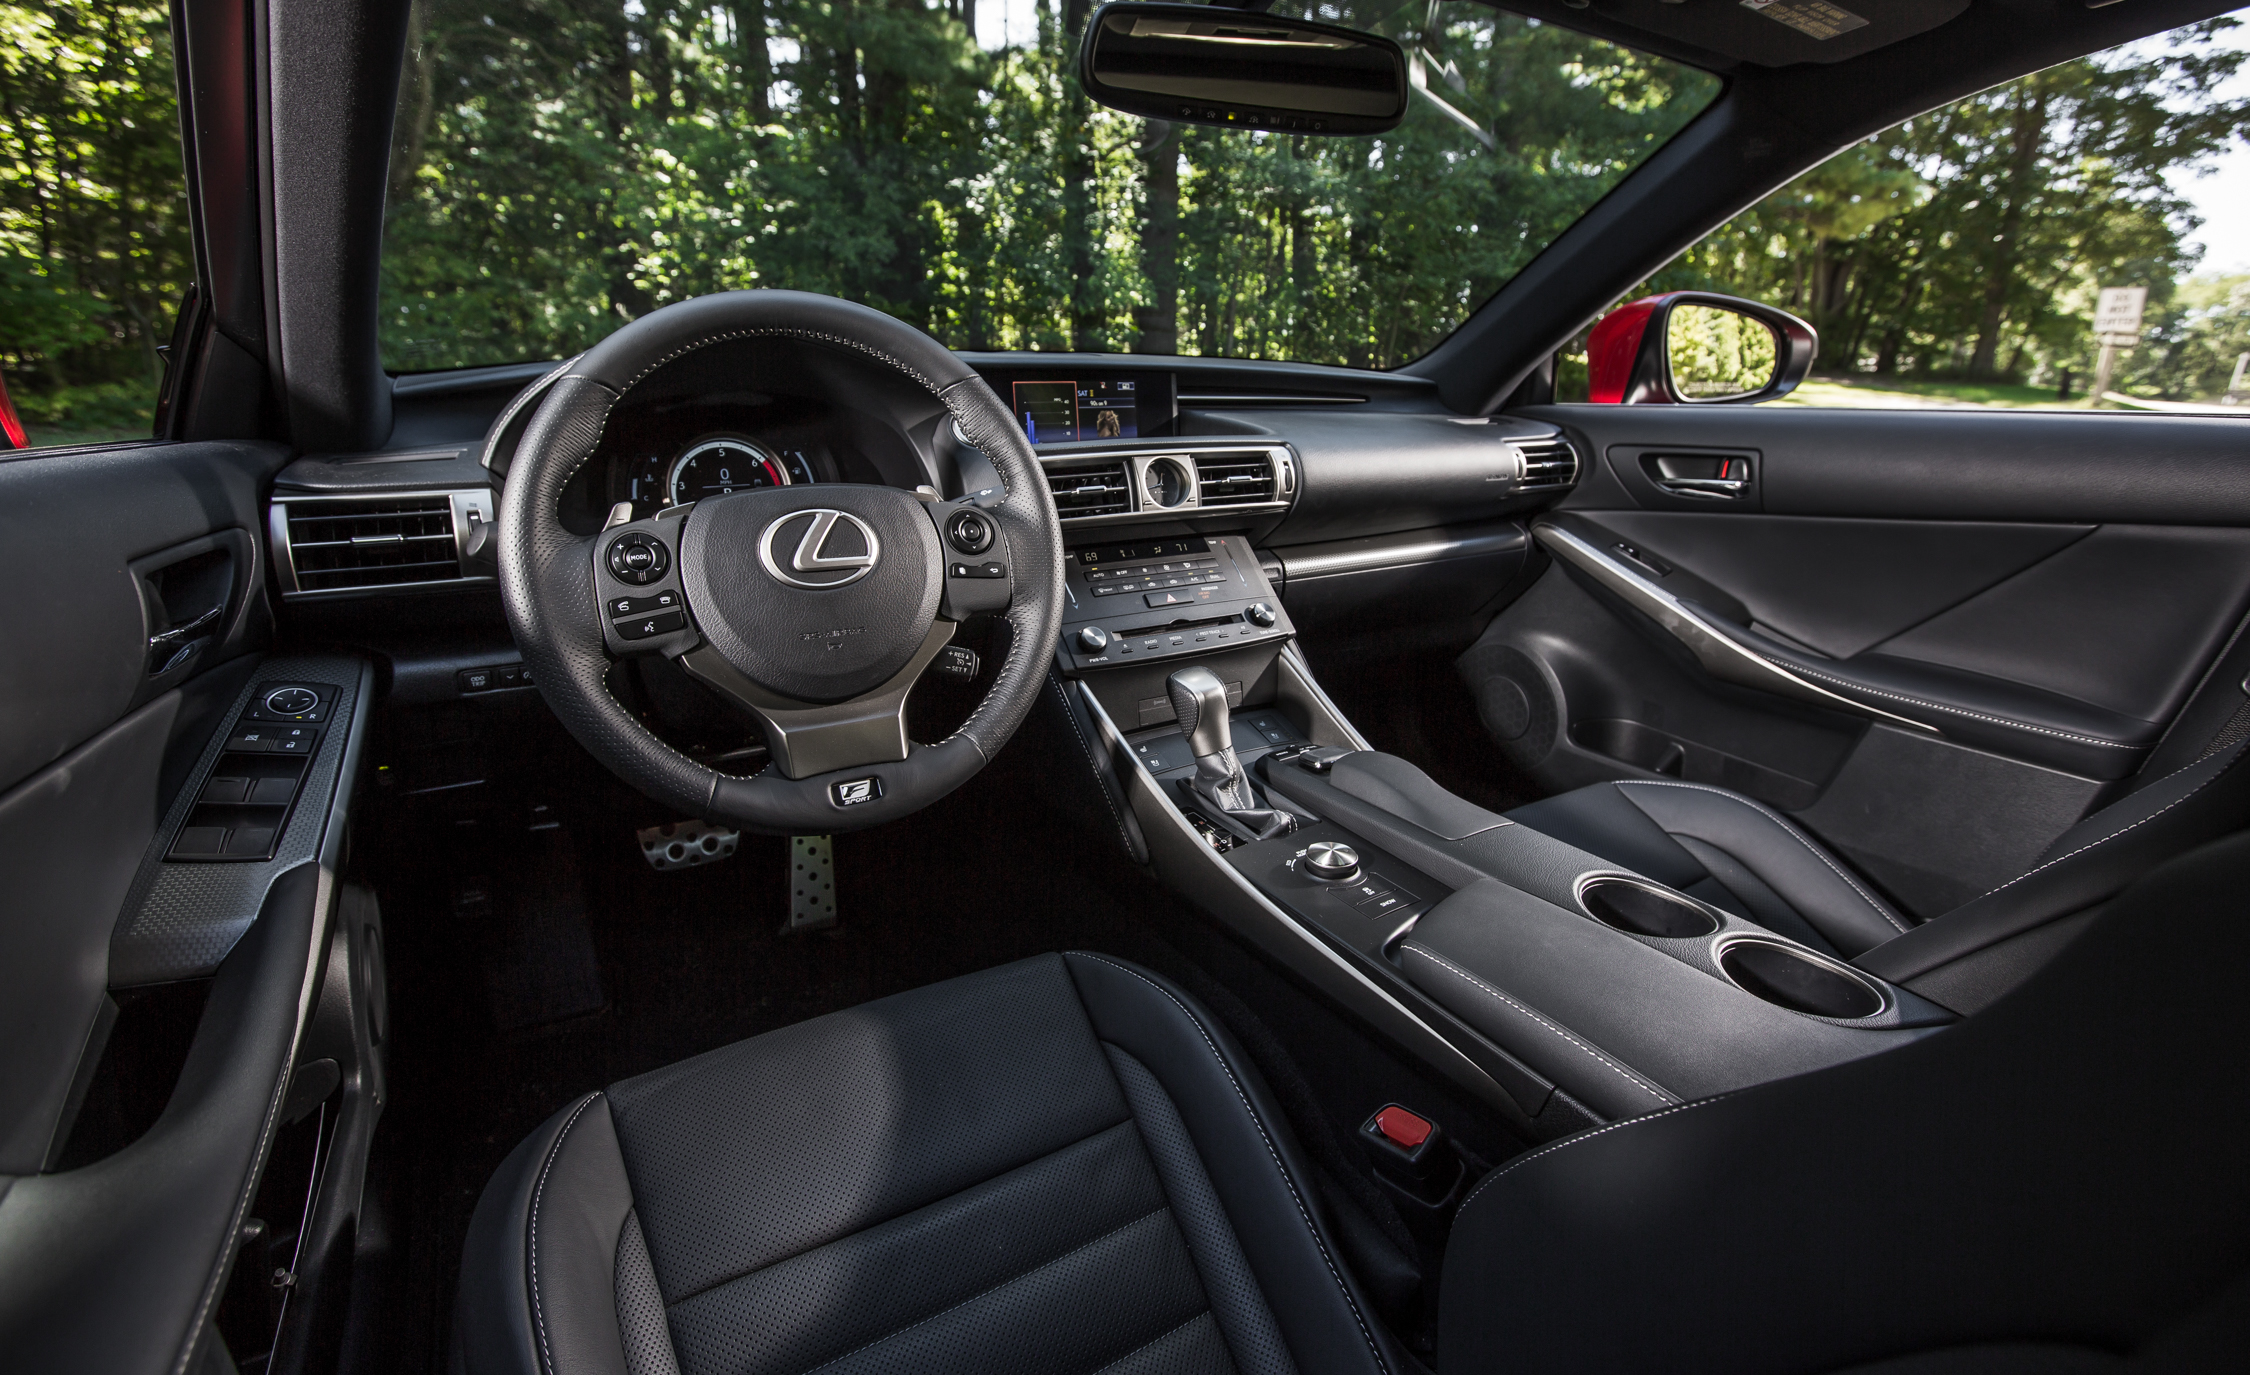 2016 Lexus IS200t F Sport Interior Cockpit